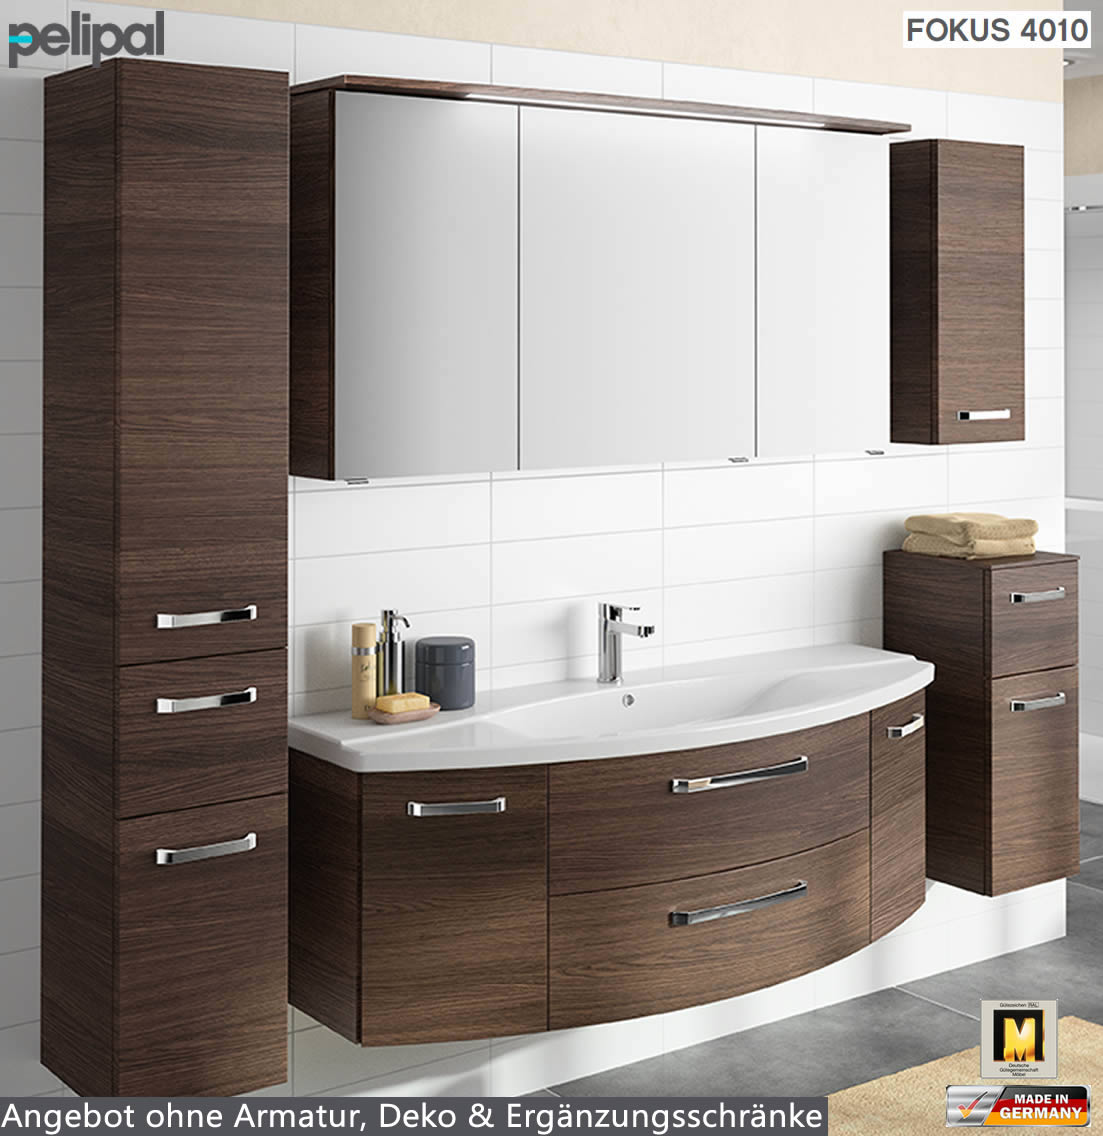 badm bel pelipal fokus 4010 reuniecollegenoetsele. Black Bedroom Furniture Sets. Home Design Ideas